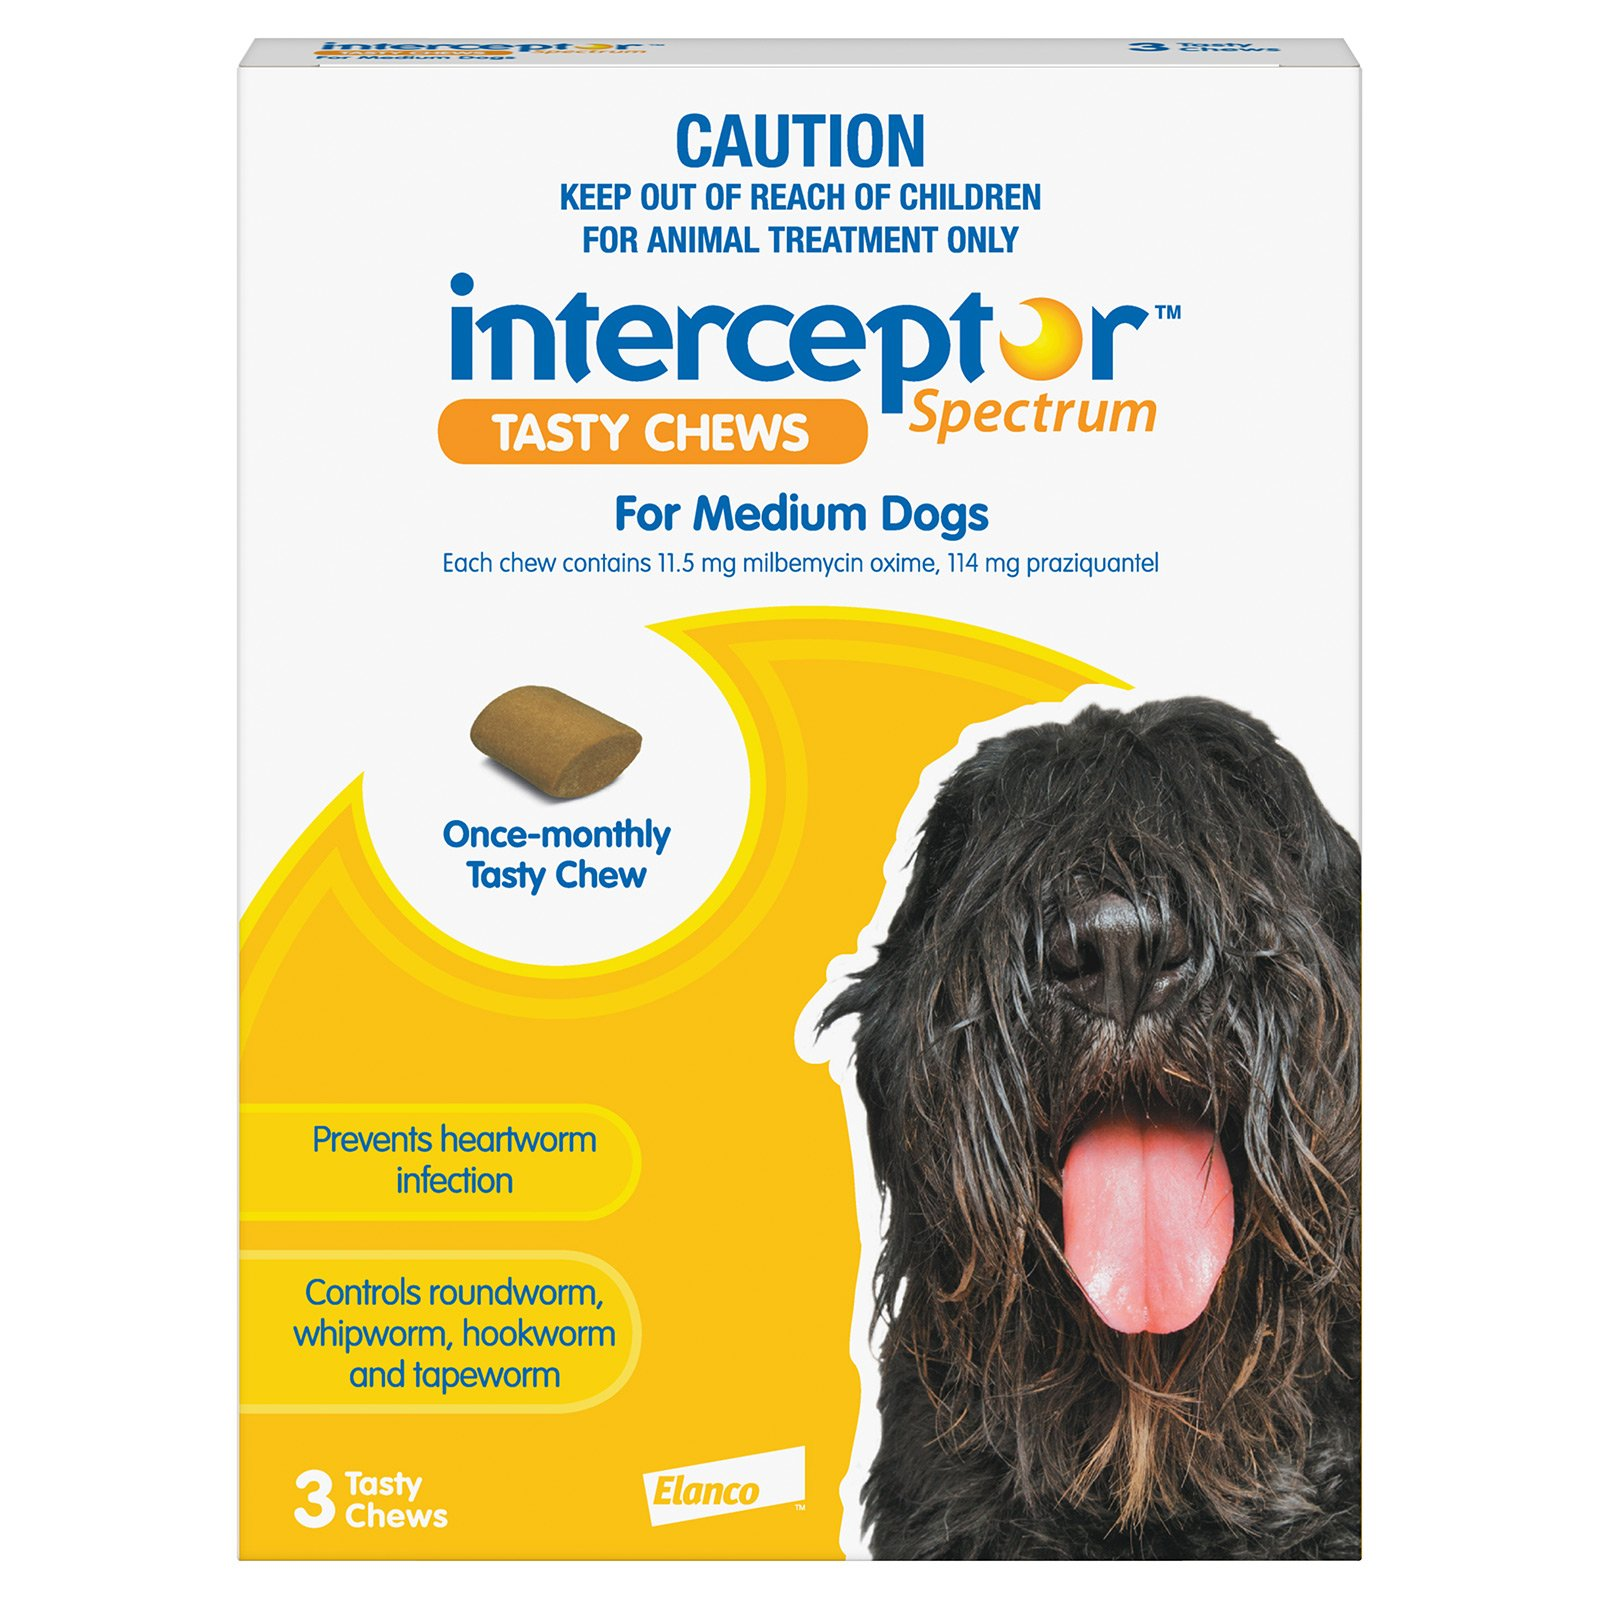 Interceptor Spectrum Tasty Chews For Medium Dogs 11 To 22Kg (Yellow)